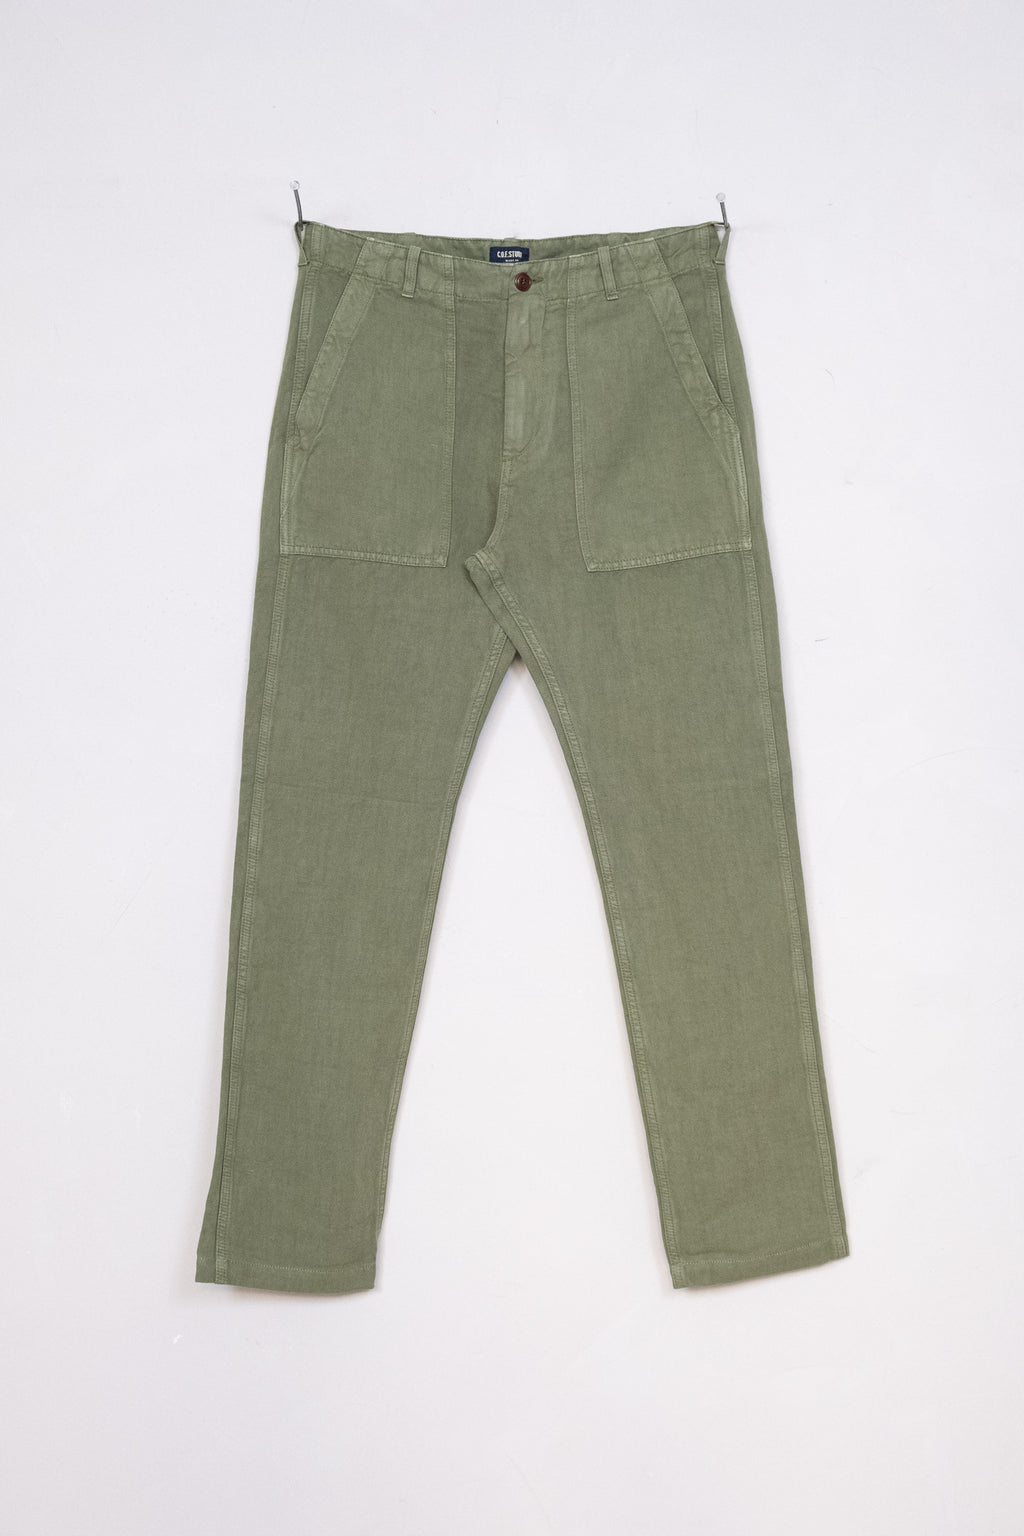 Fatigue Pant Cotton Linen Twill - Military